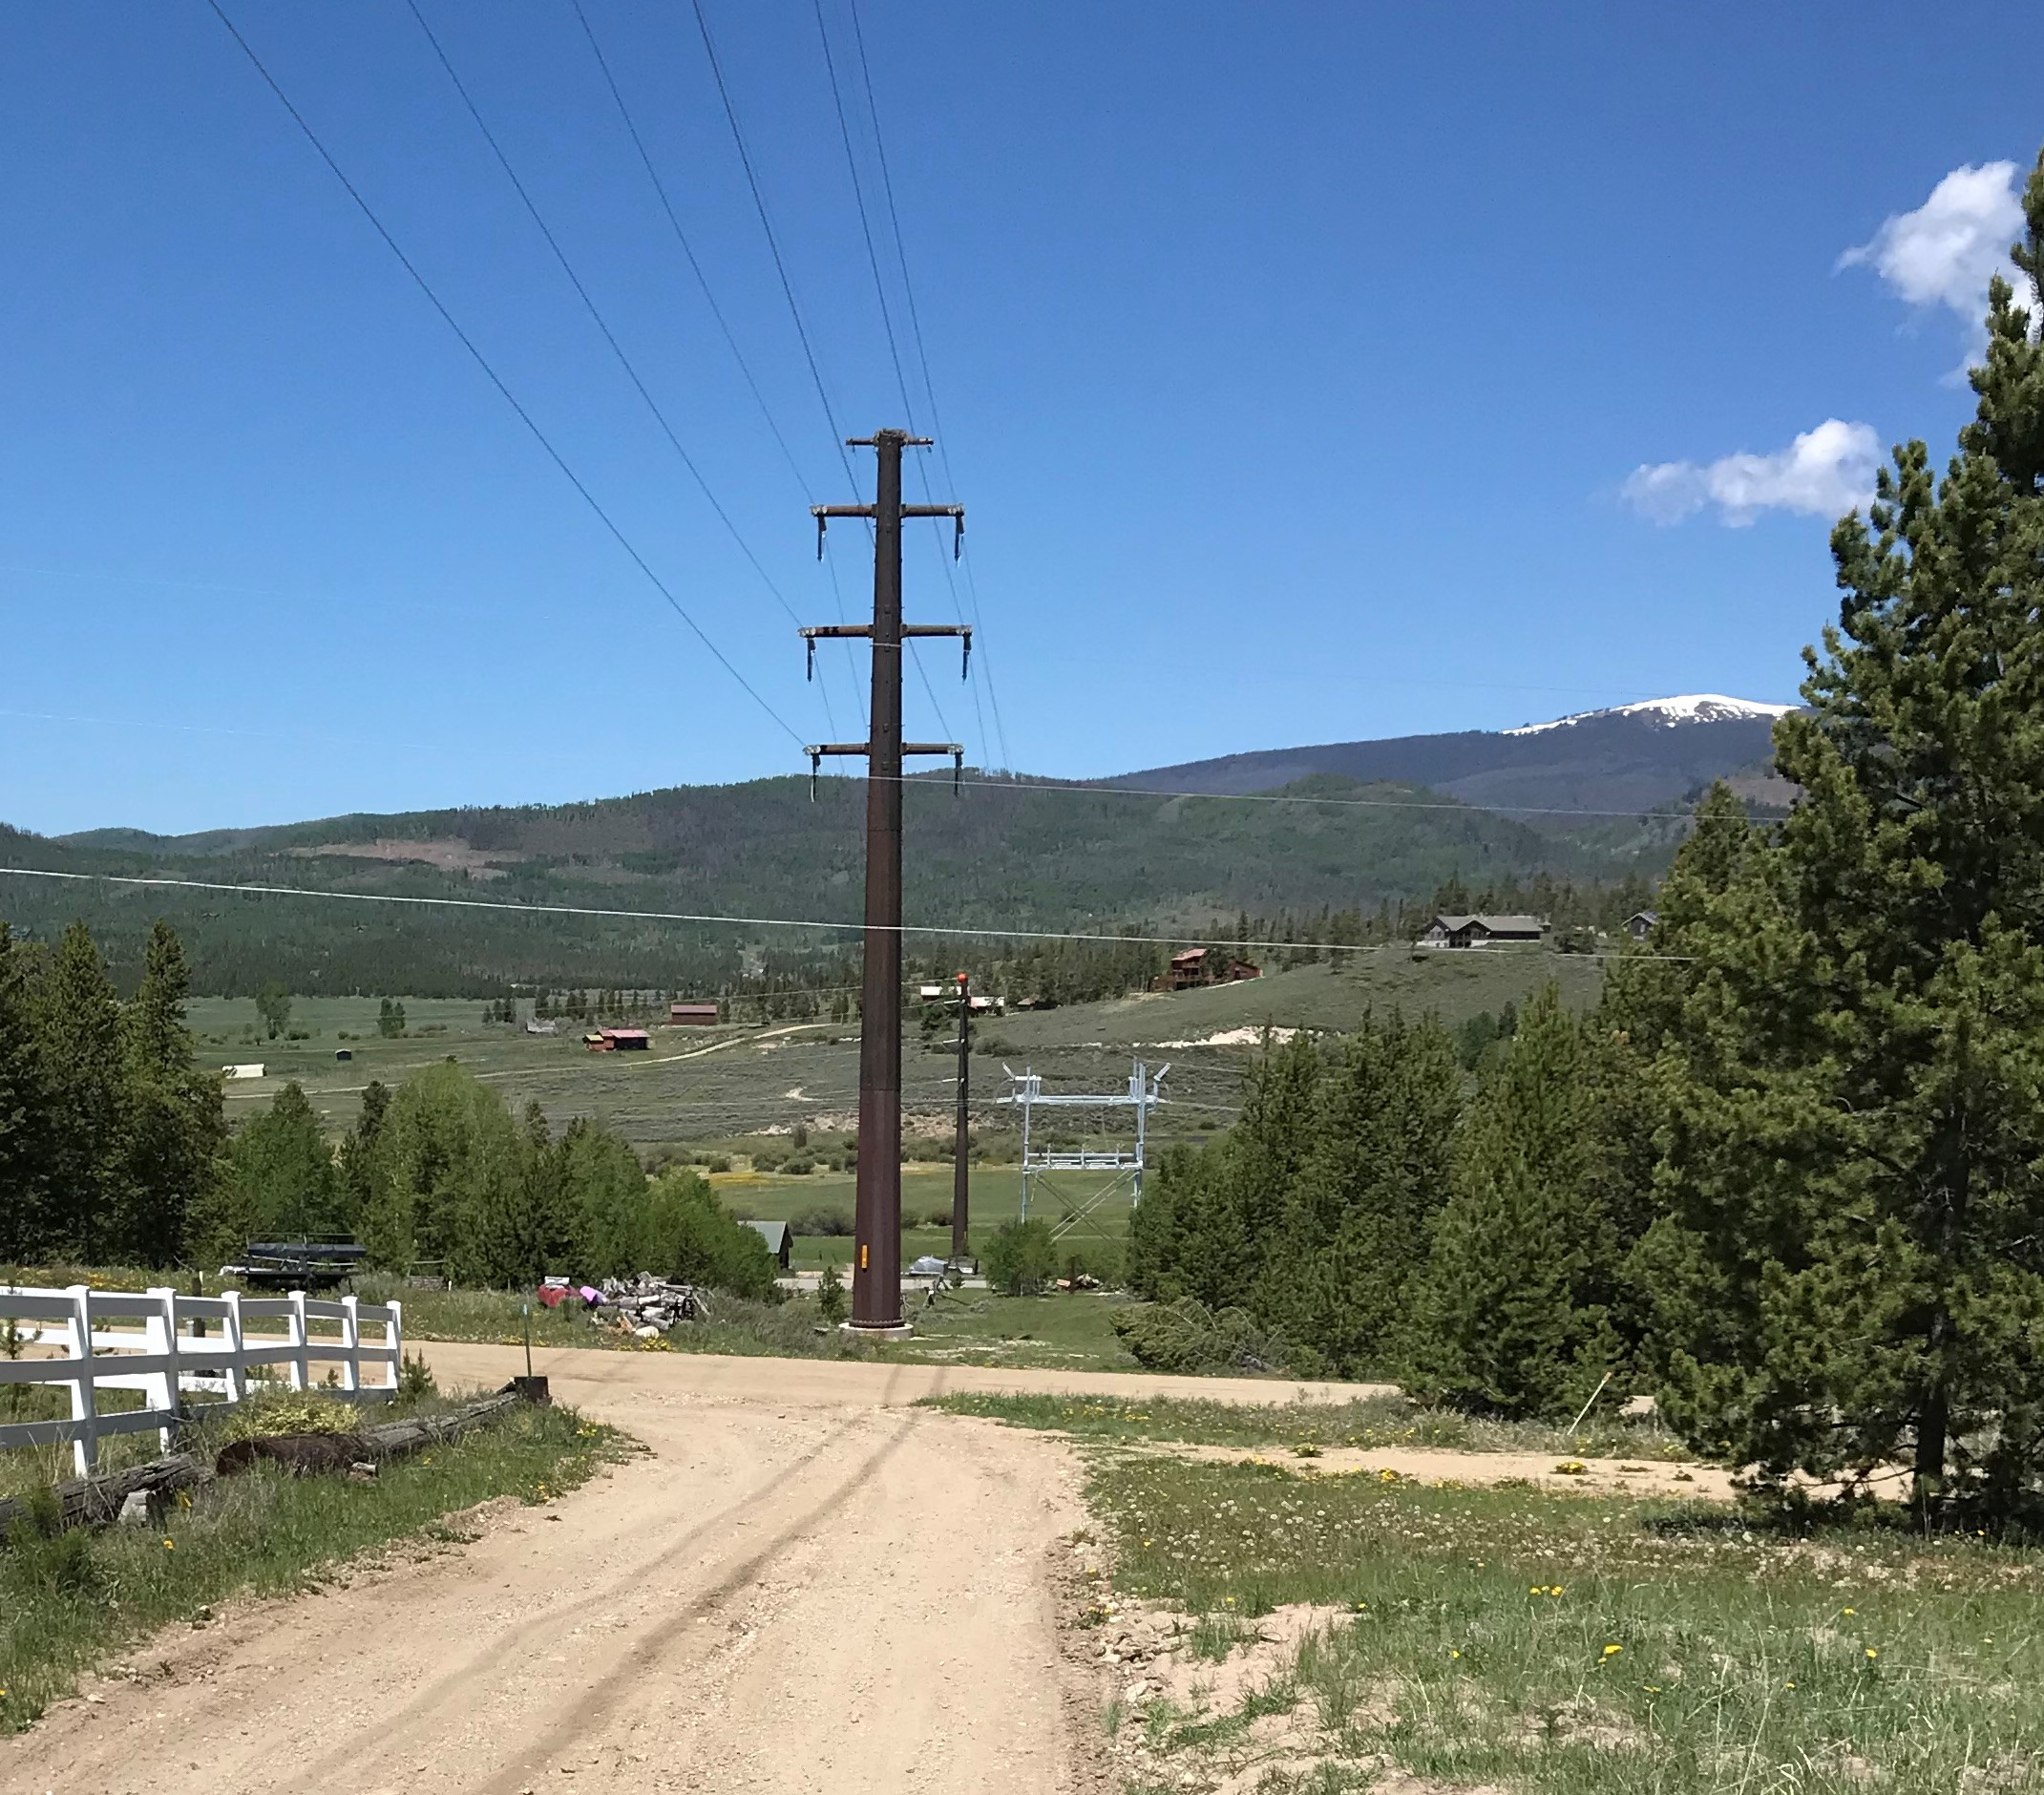 Granby-Windy Gap transmission line